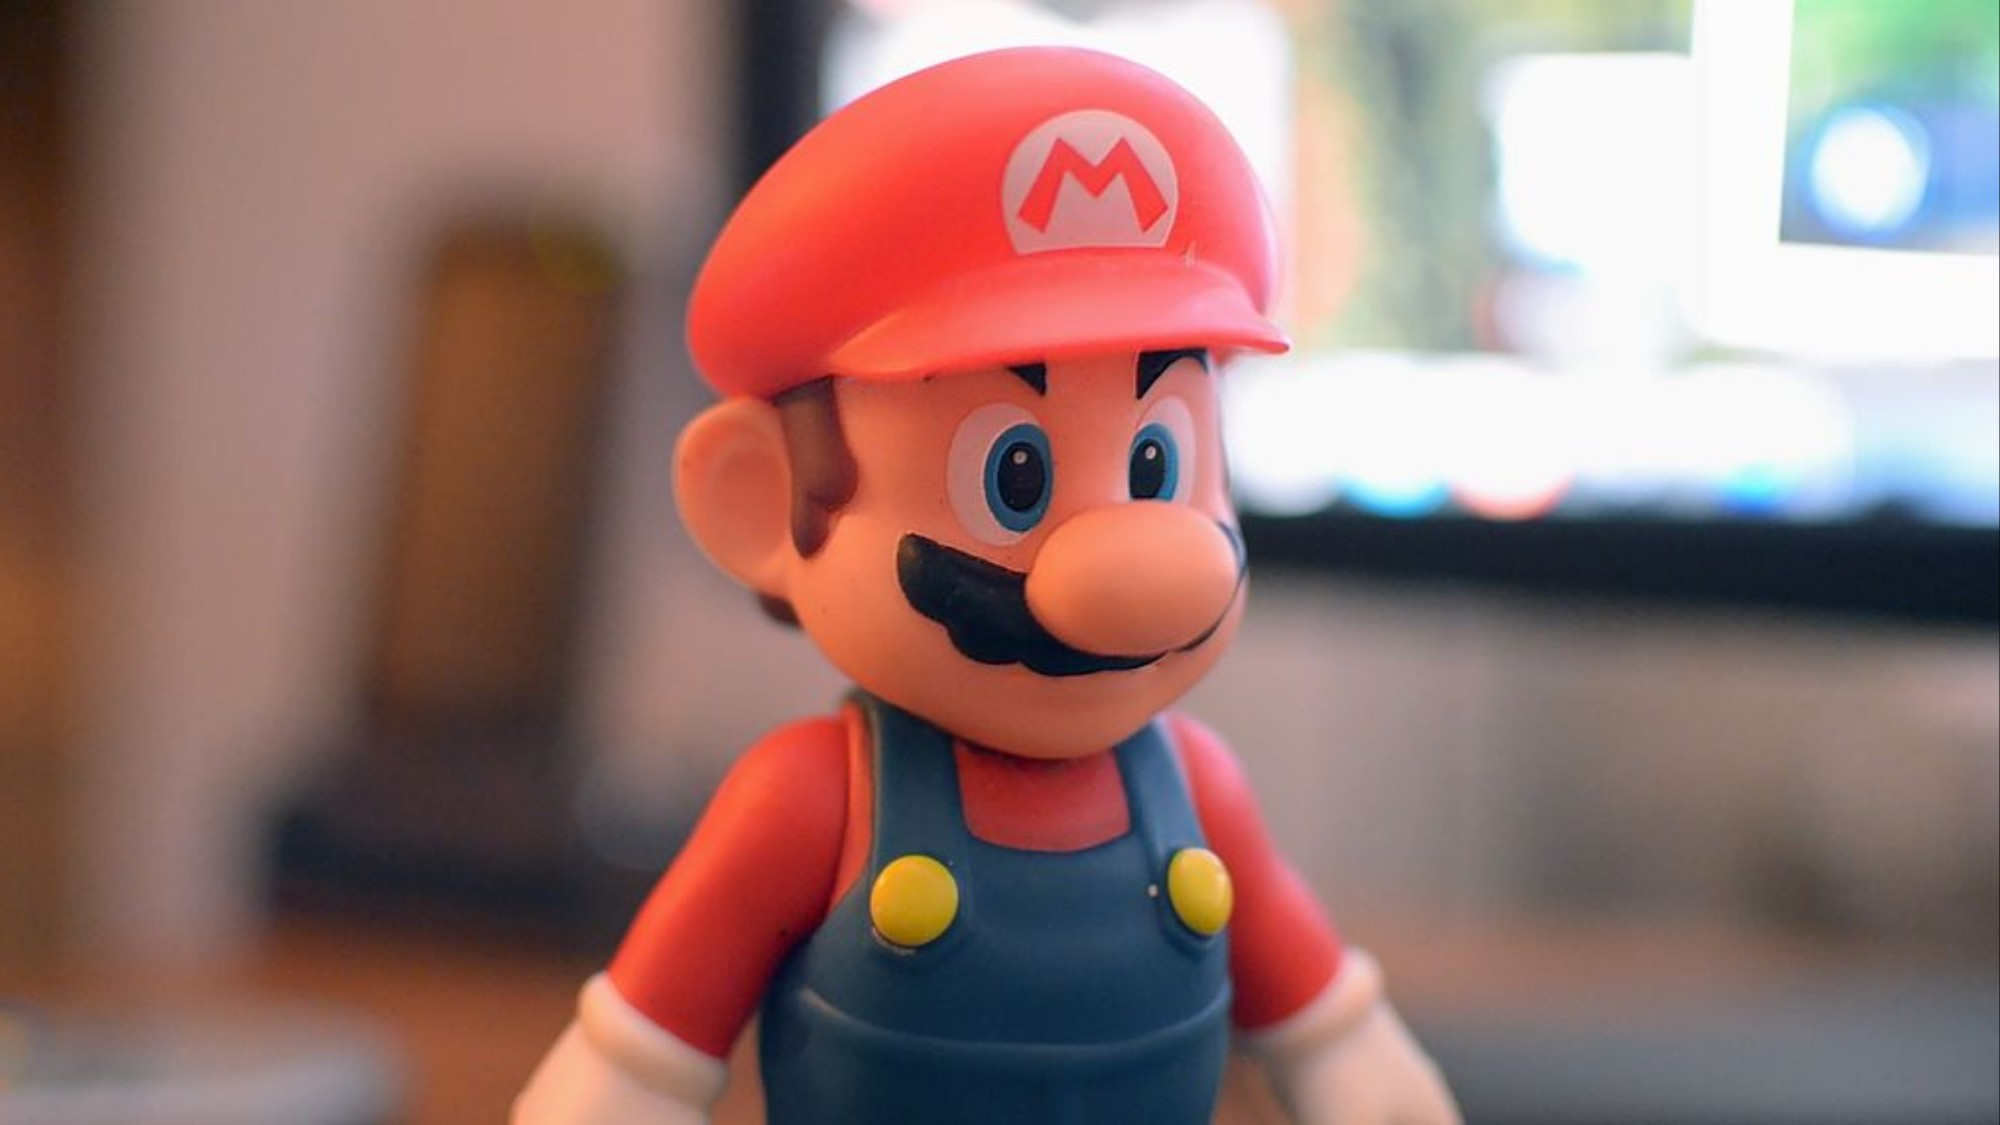 Super Mario Isn't a Human Being - VICE